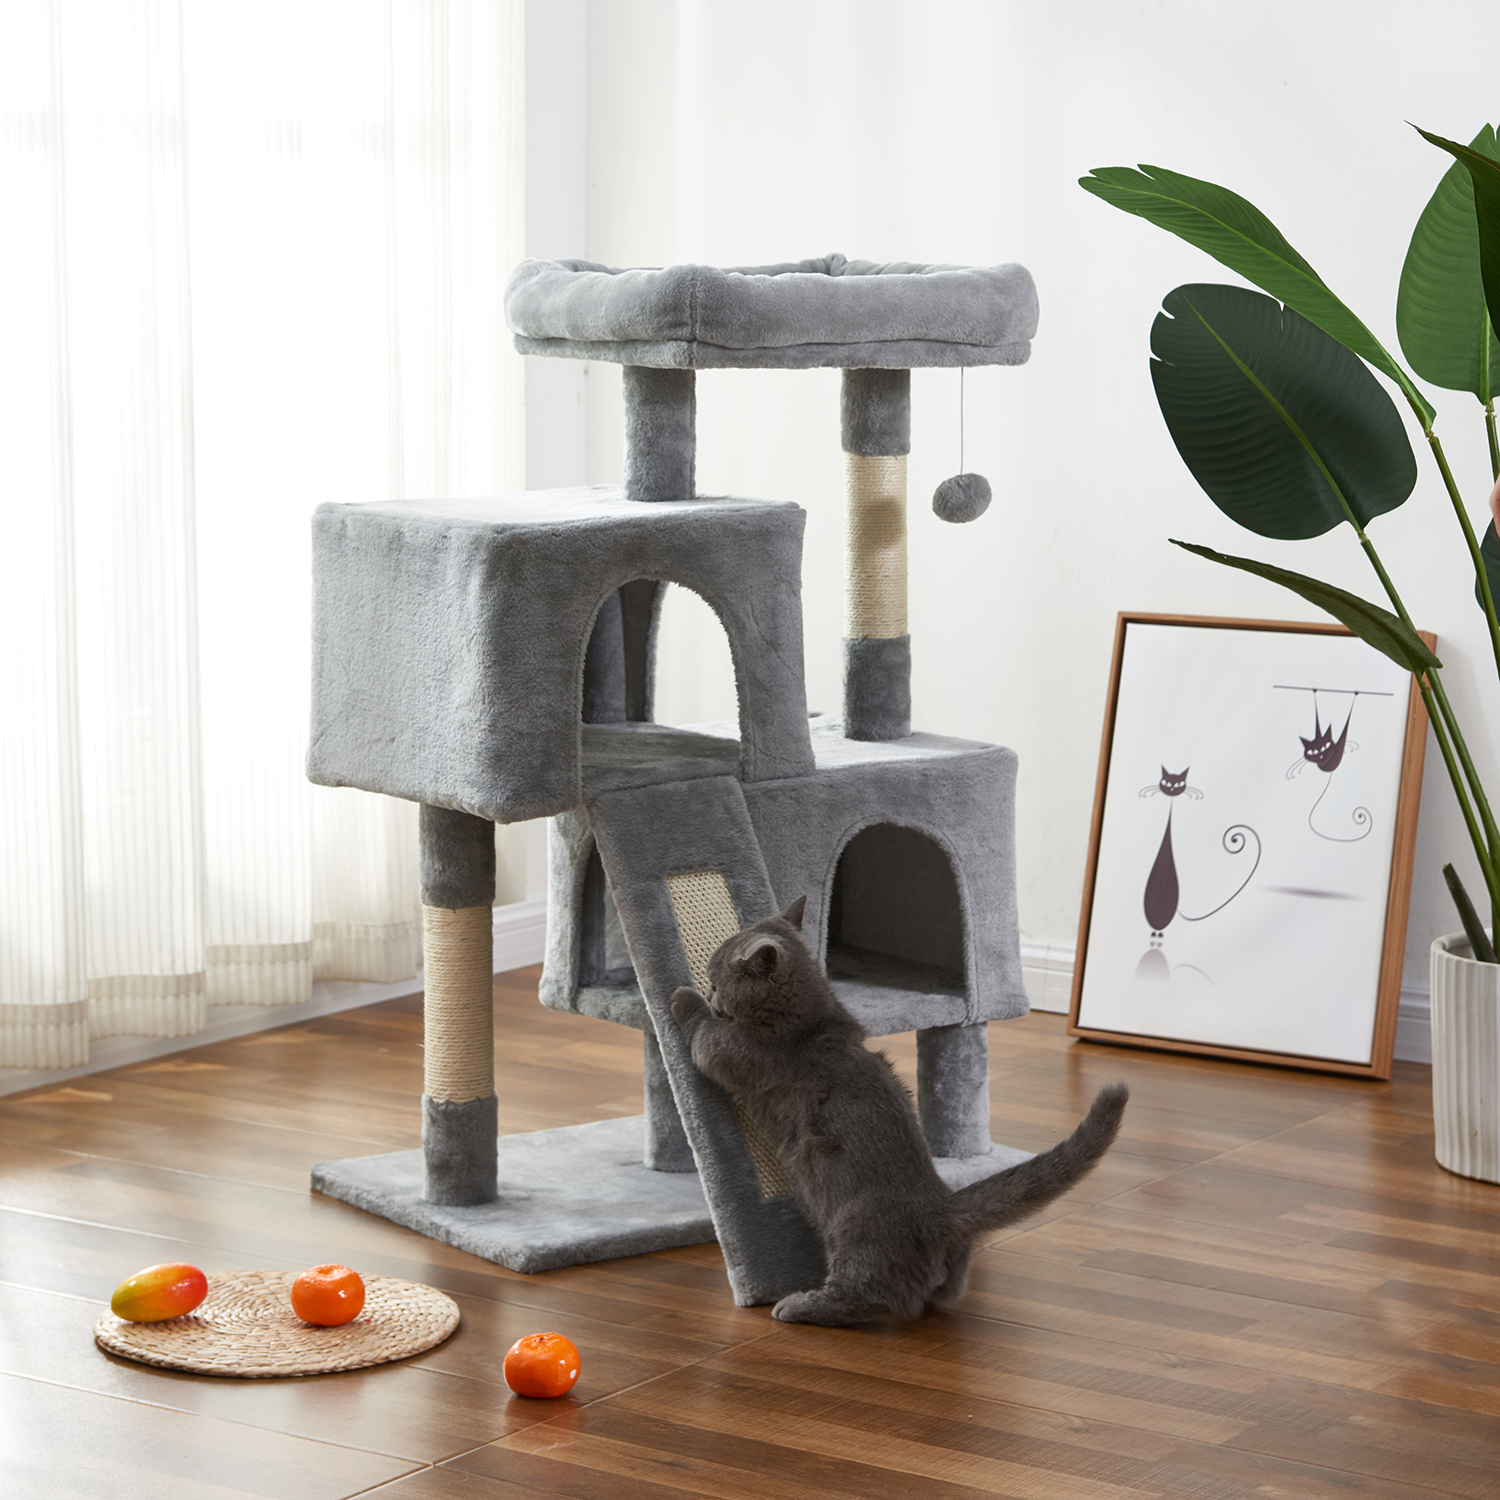 Multi Level Cat Tree Condo Furniture With Sisal Covered Scratching Posts For Kittens Cats And Pets Walmart Com Walmart Com